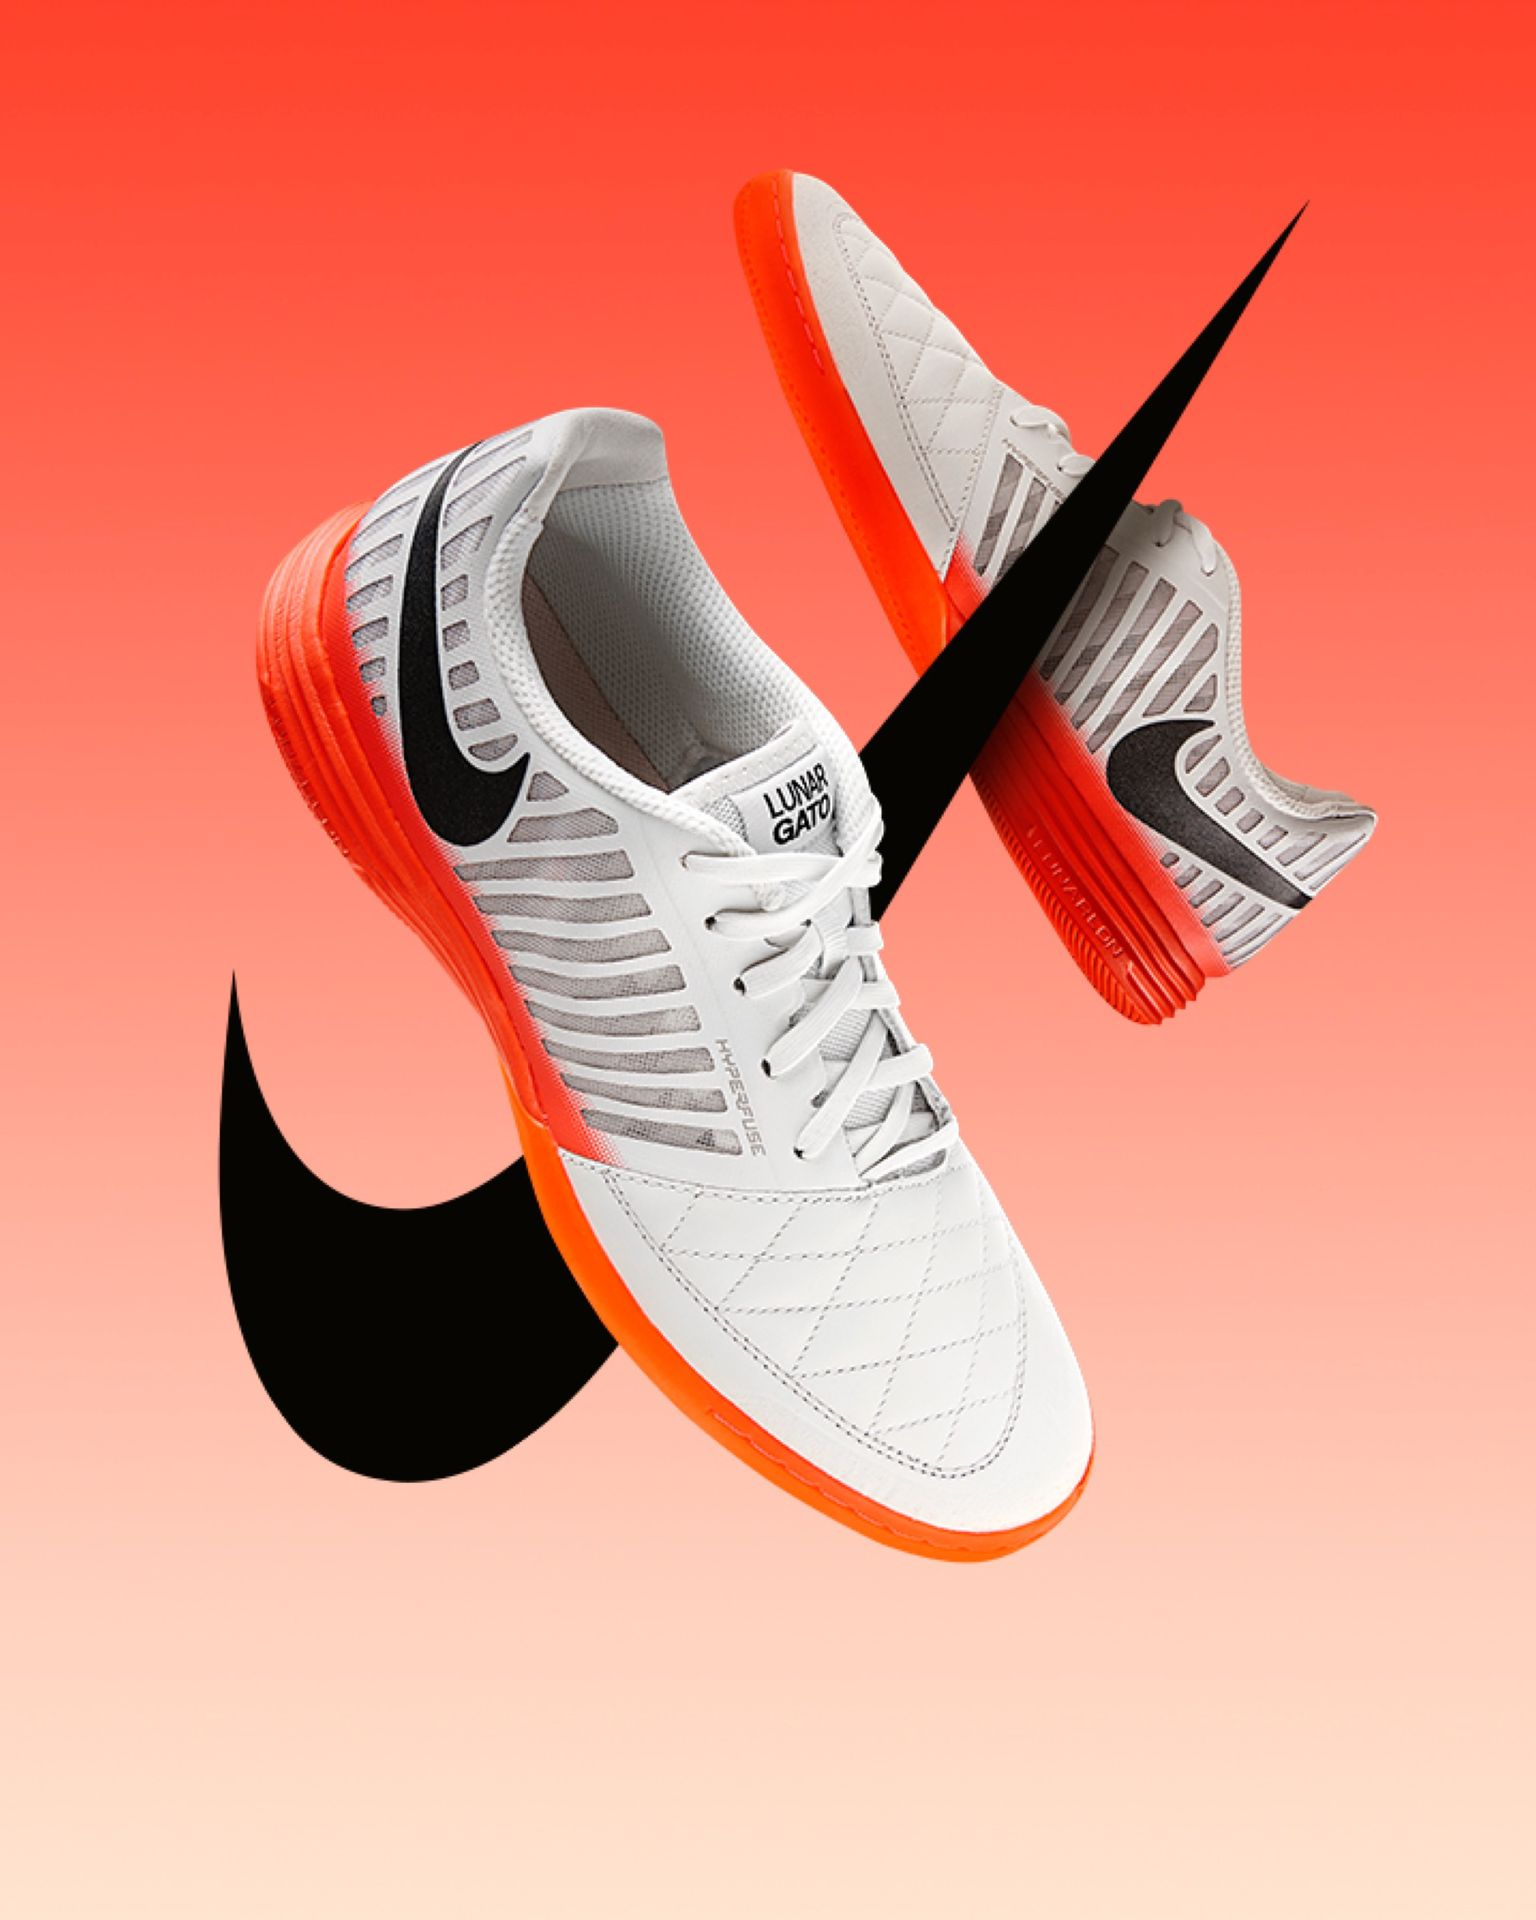 Nike Football Sunrise pack